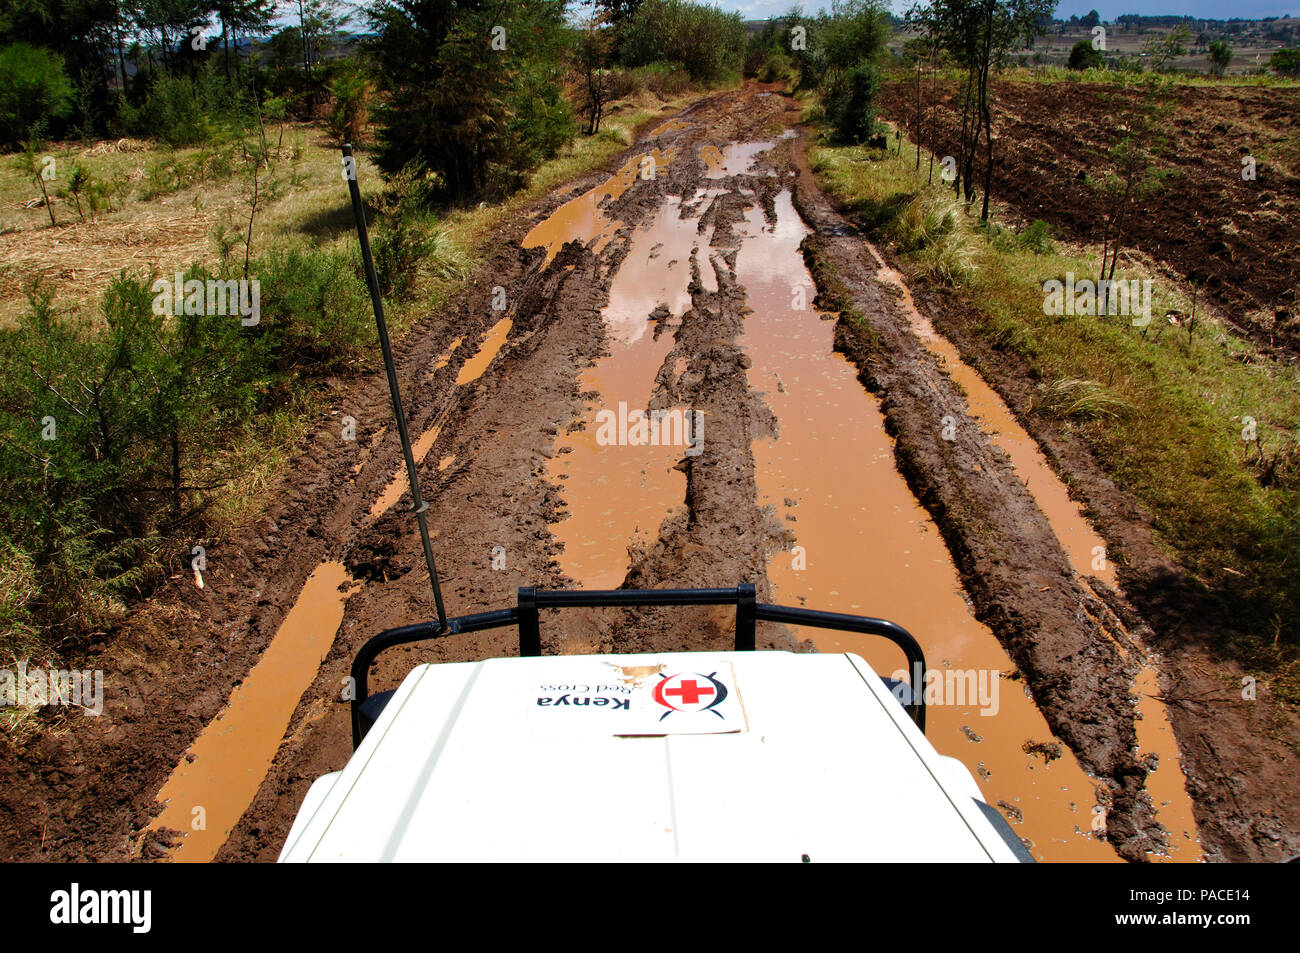 Kenya Red Cross Mission Eldoret: Dirty roads and sometimes bloody work. bad condition and trouble-shooting everywhere Stock Photo